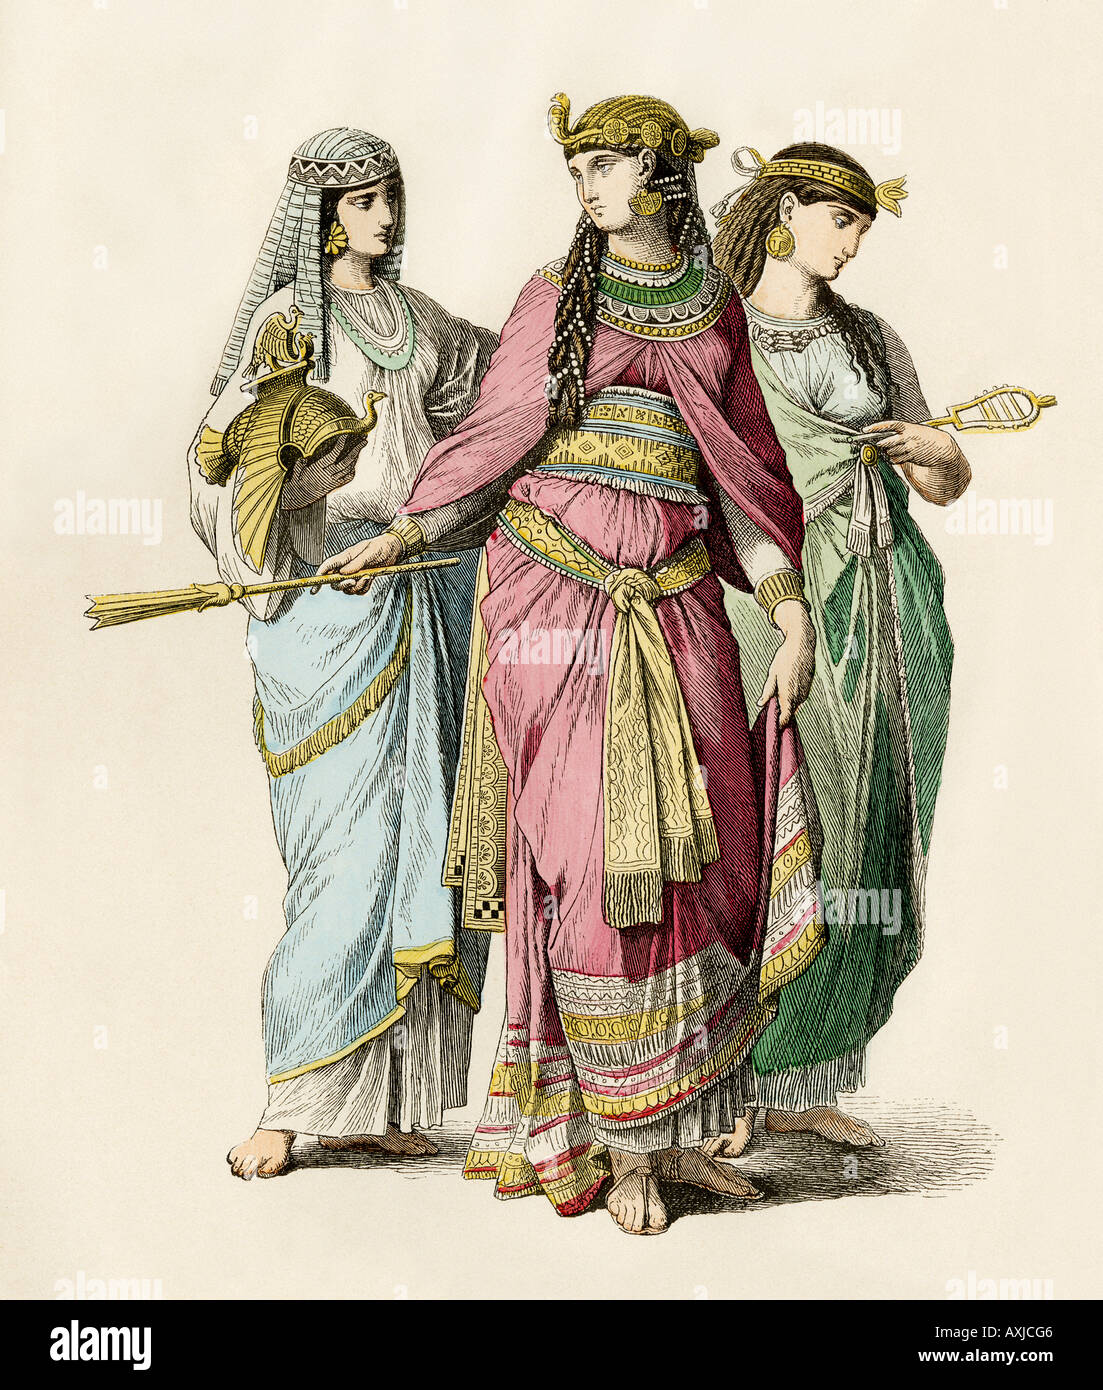 Ancient Egyptian queen and attendants - Stock Image